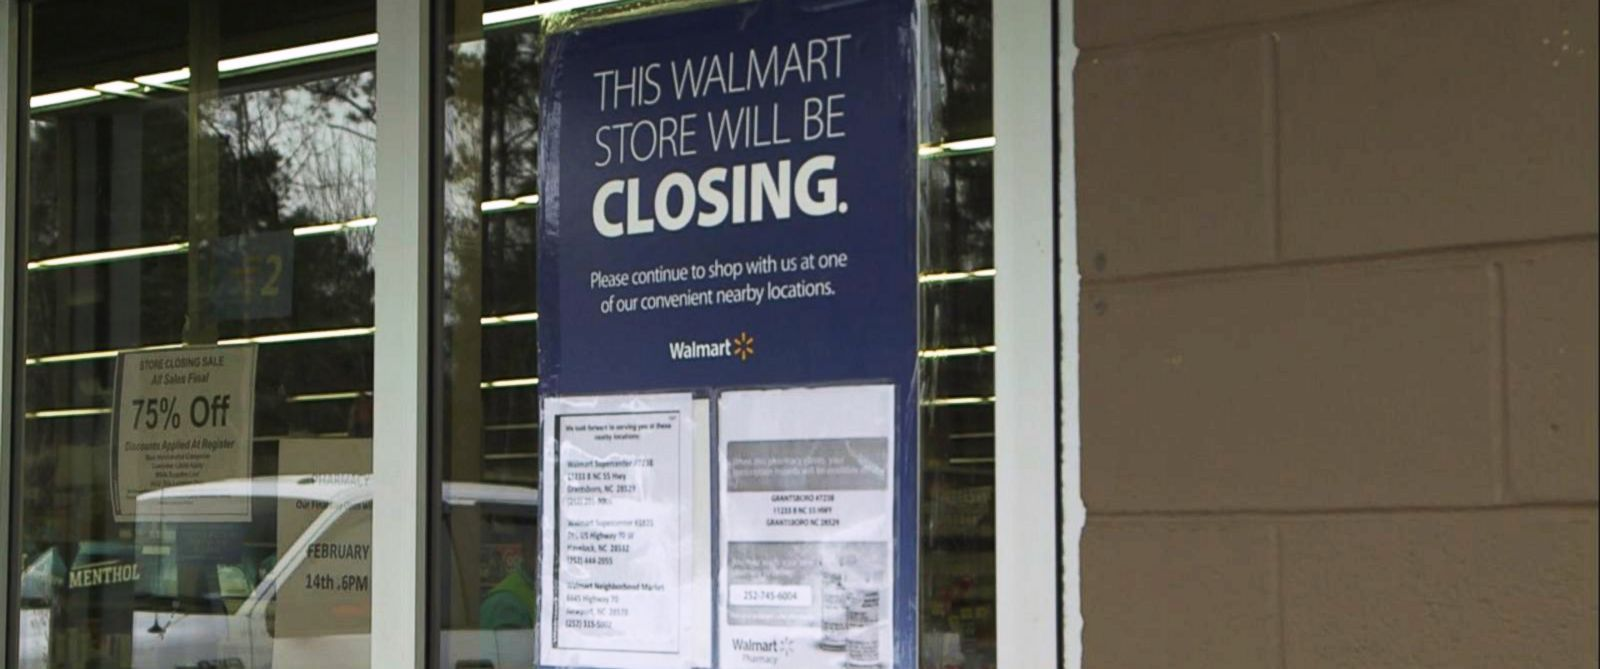 PHOTO: On Jan. 15, Walmart announced that it was closing 269 of its stores globally, including 154 sites in the US, for business reasons.